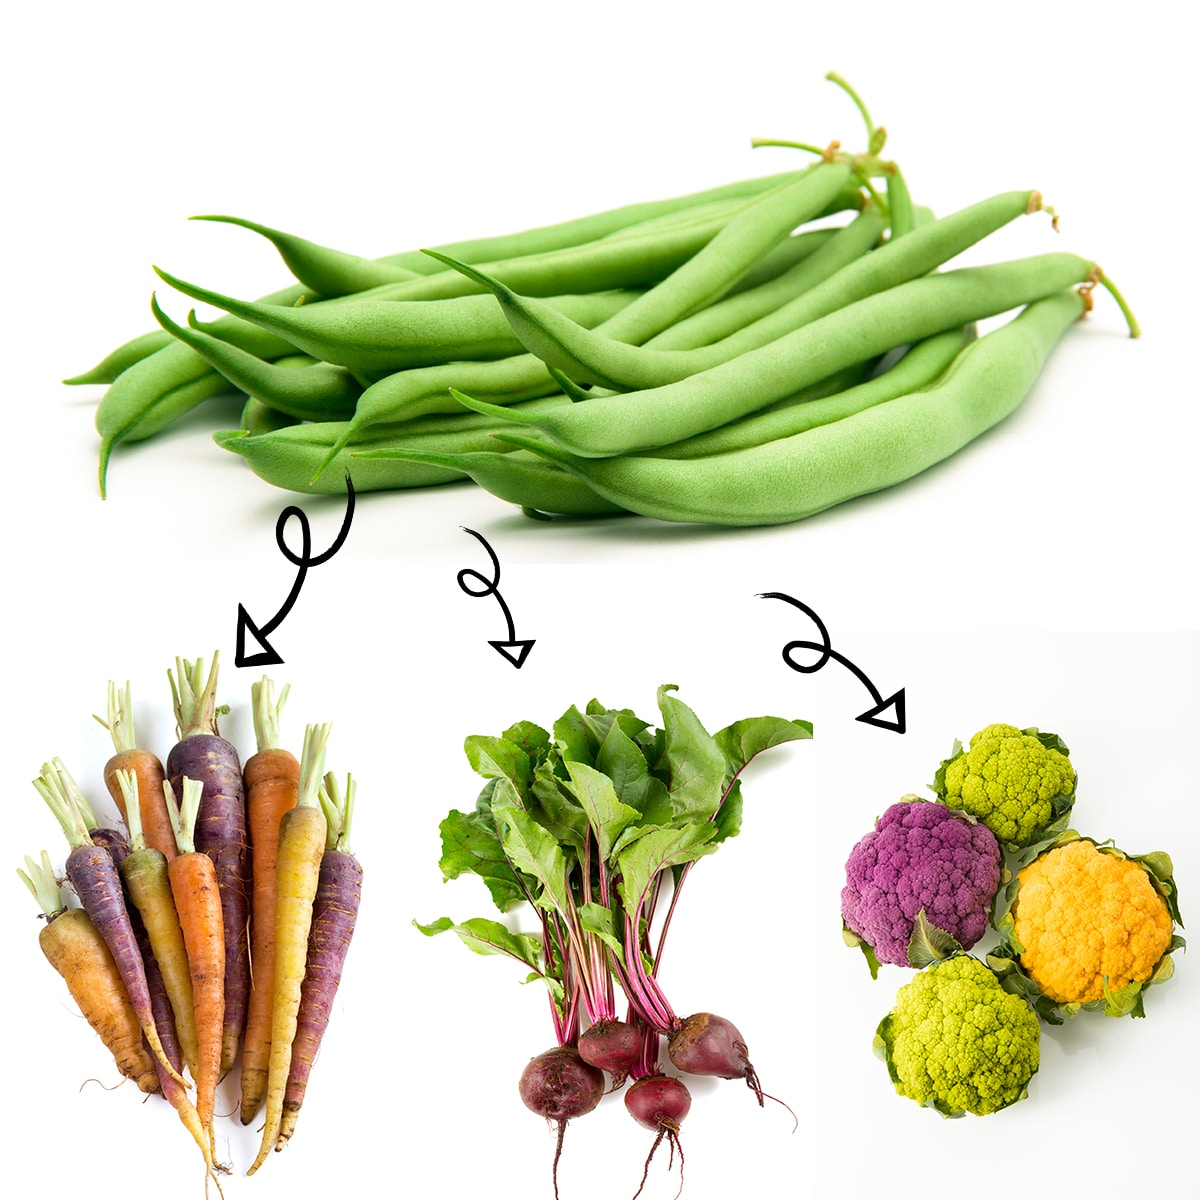 Bright white graphic of a fresh green beans with arrows linking it to colourful carrots, beets, and heads of cauliflower.